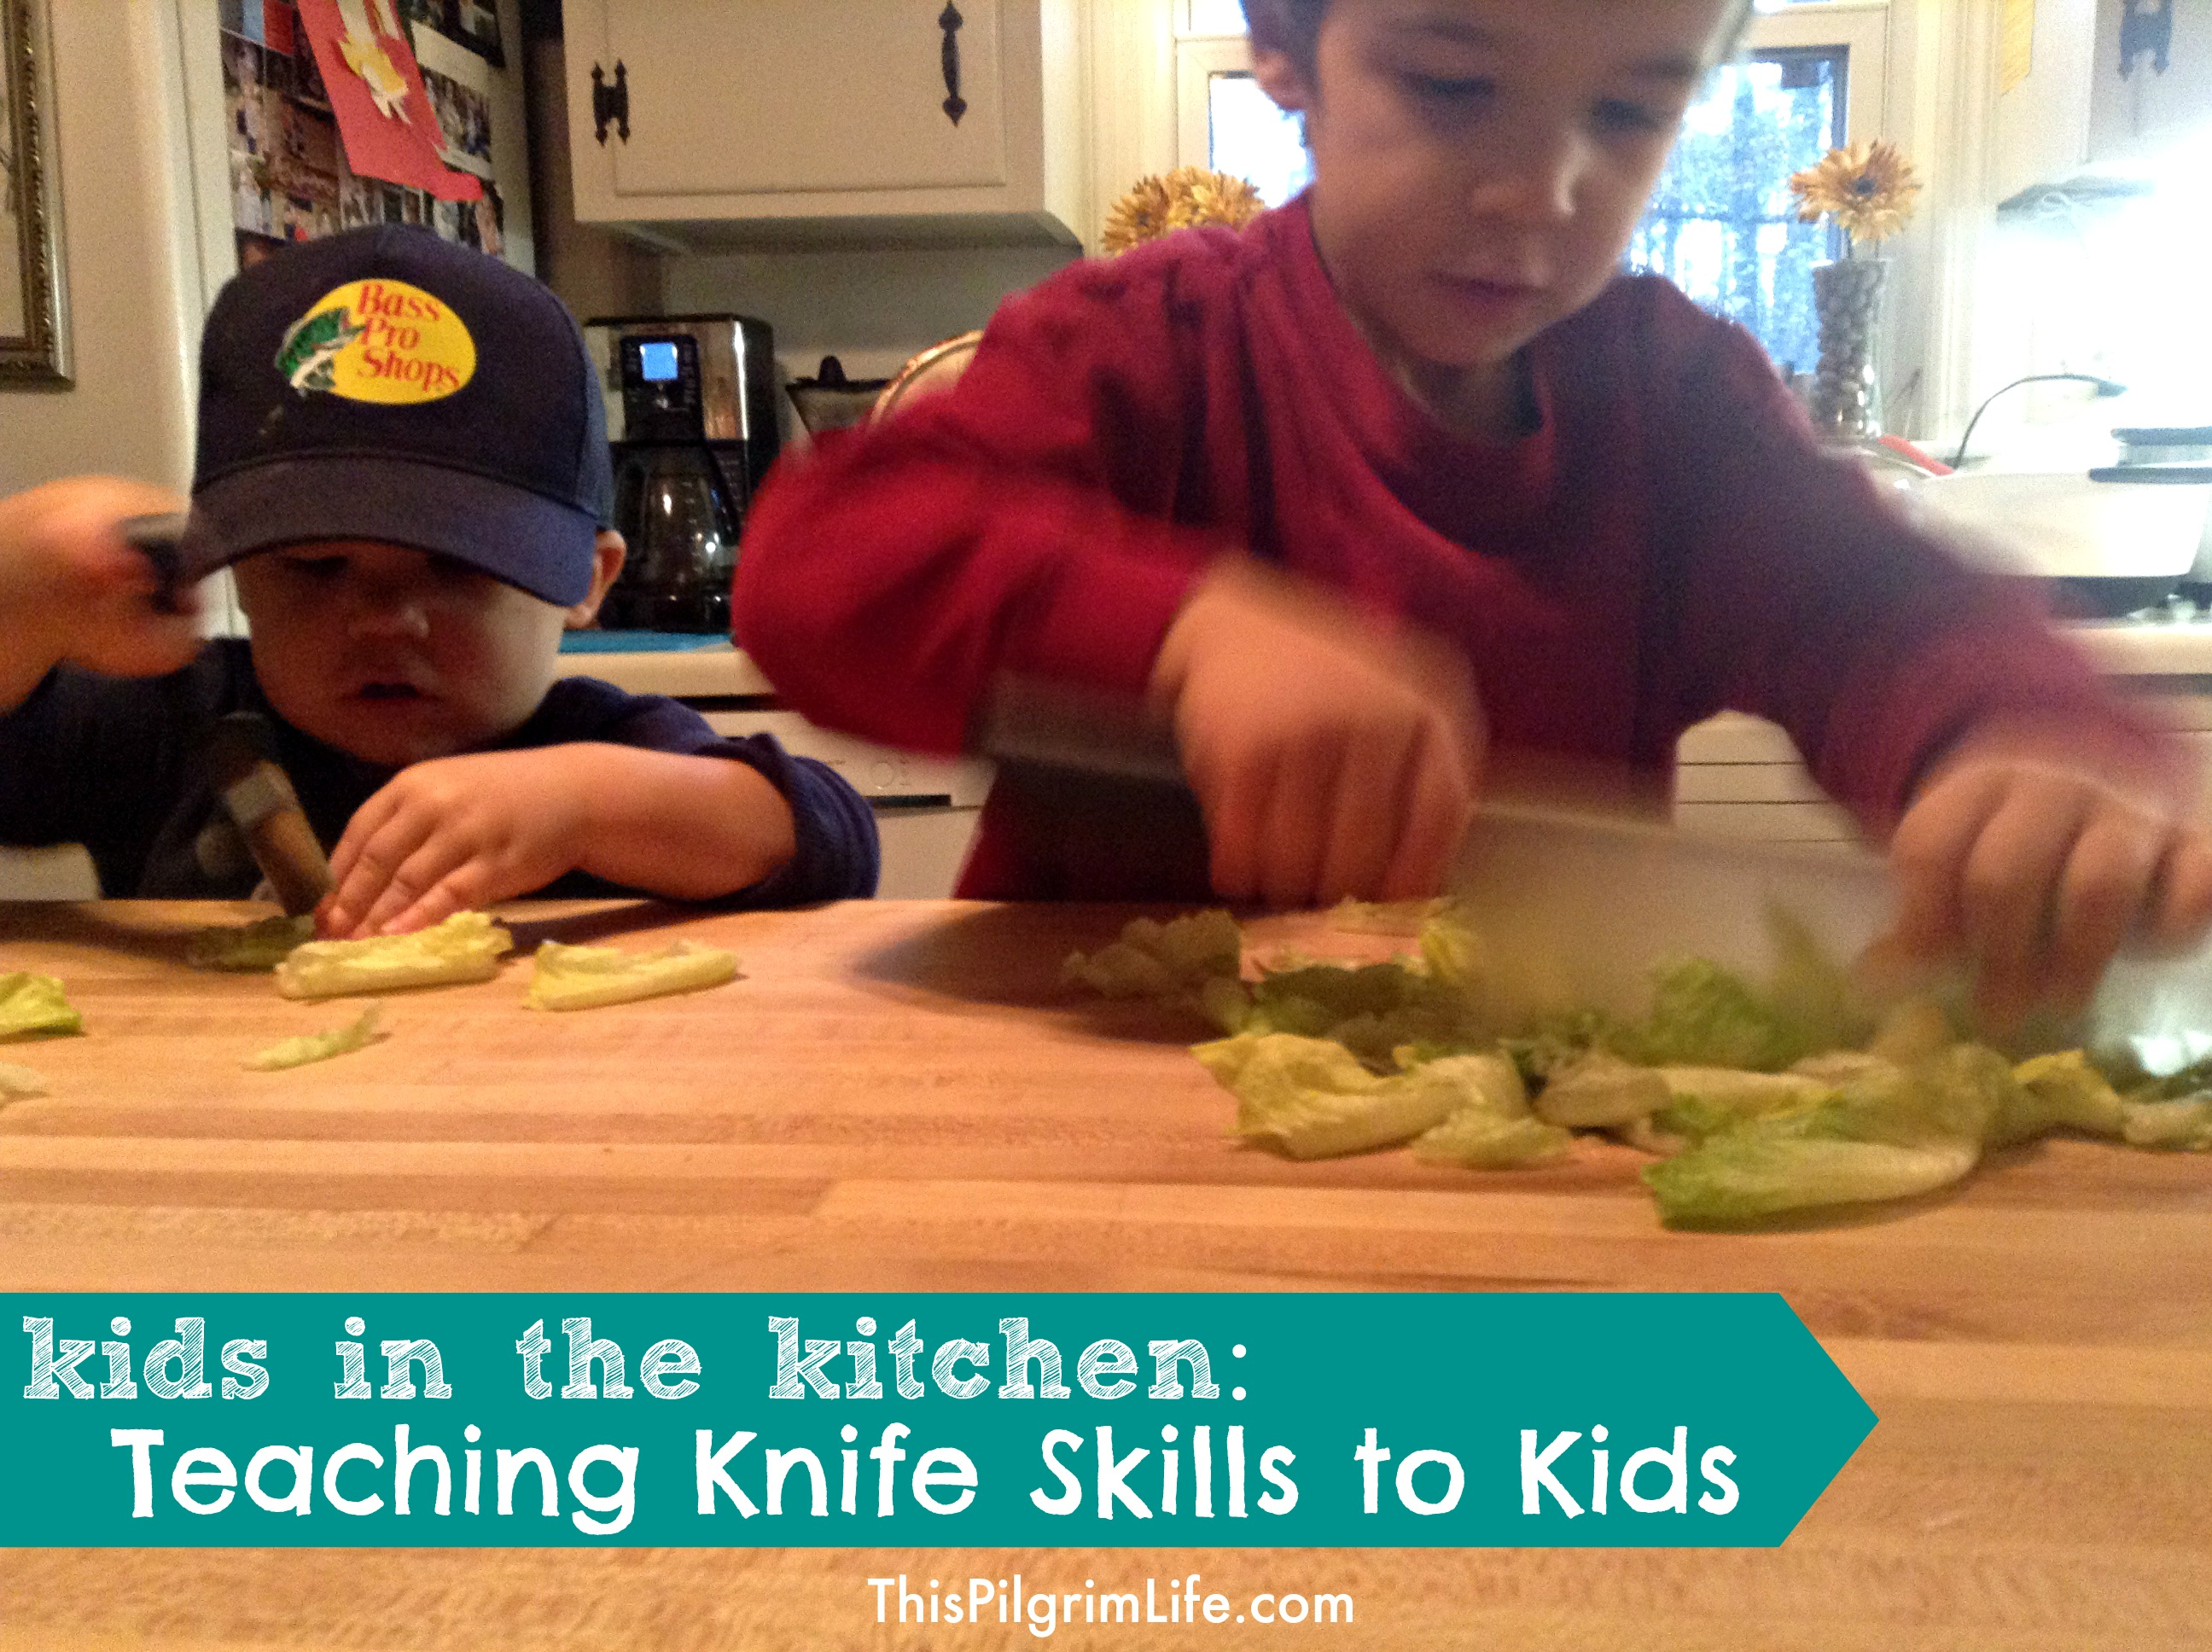 Even toddlers can safely participate in cutting food in the kitchen. Check out these tips for teaching knife skills to children of all ages. Plus, find ideas and links for age-appropriate cutting tools .